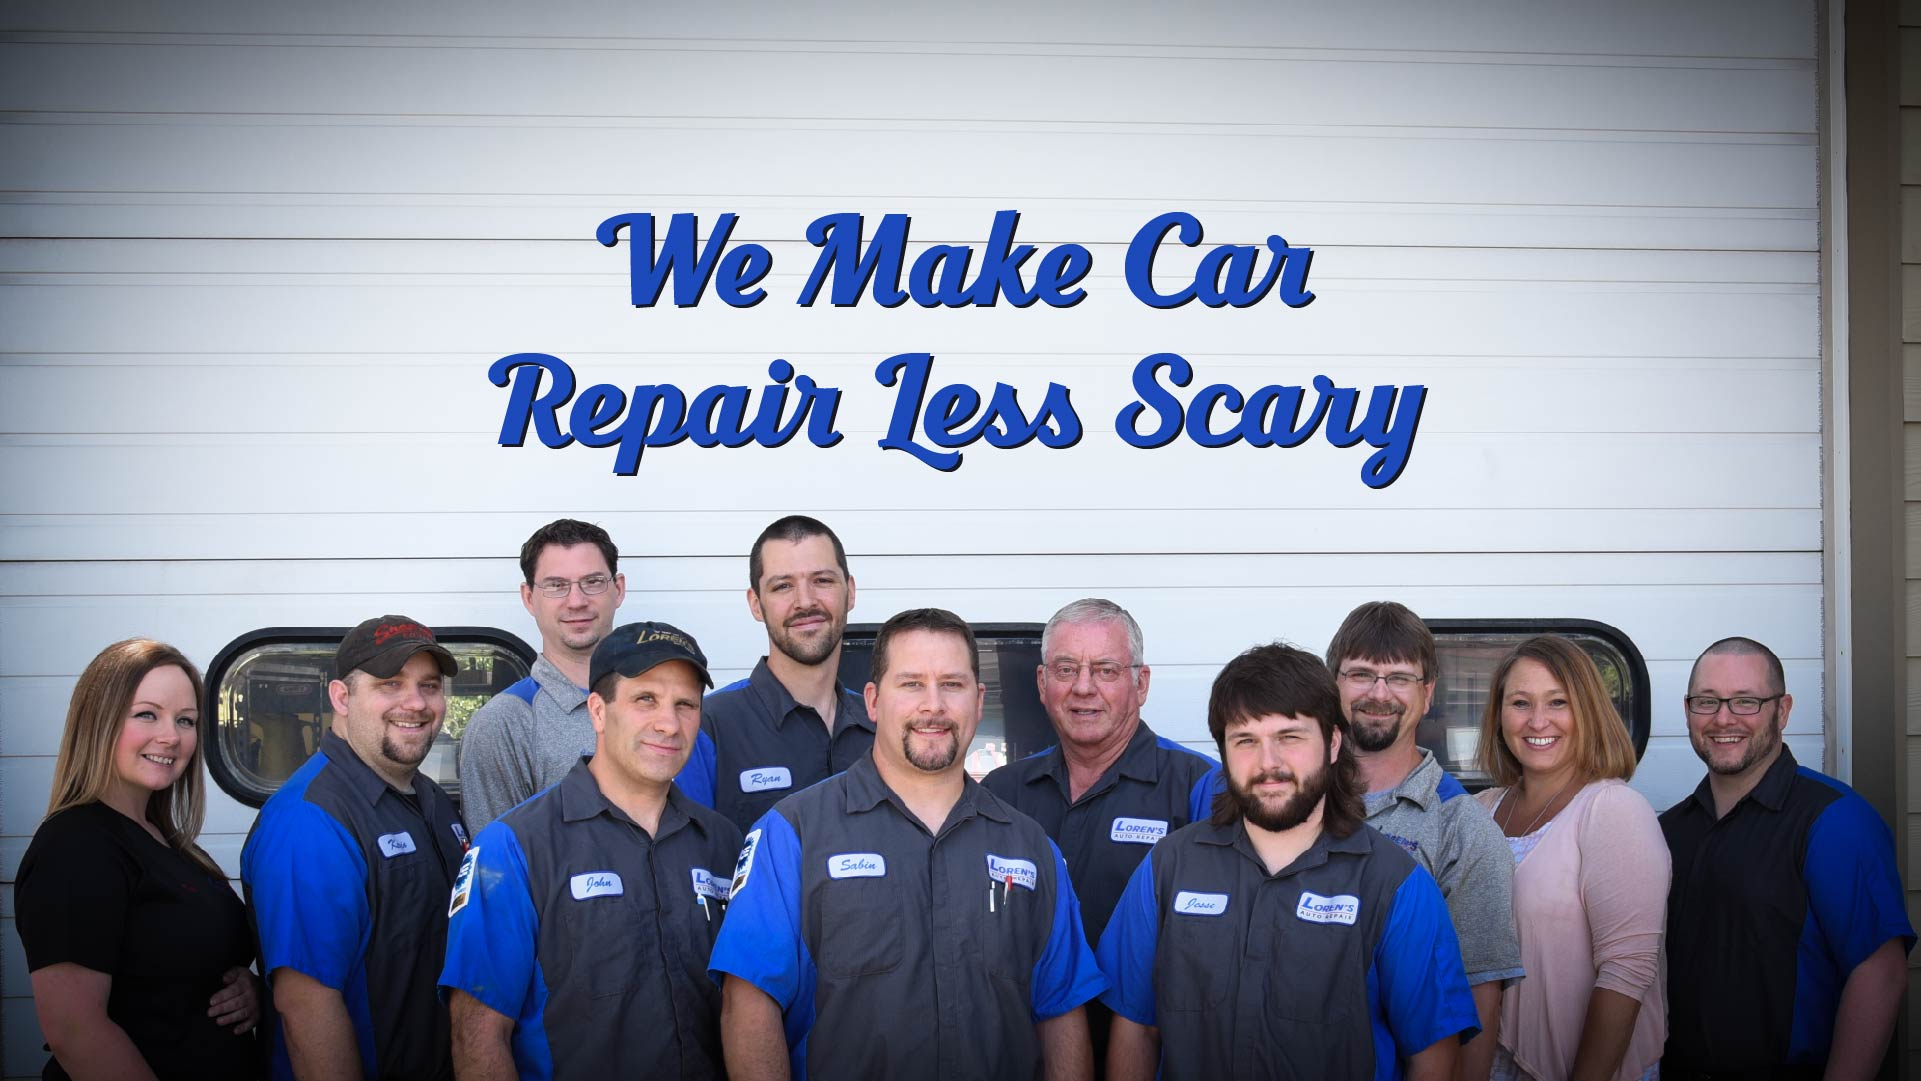 We-Make-Car-Repair-Less-Scary